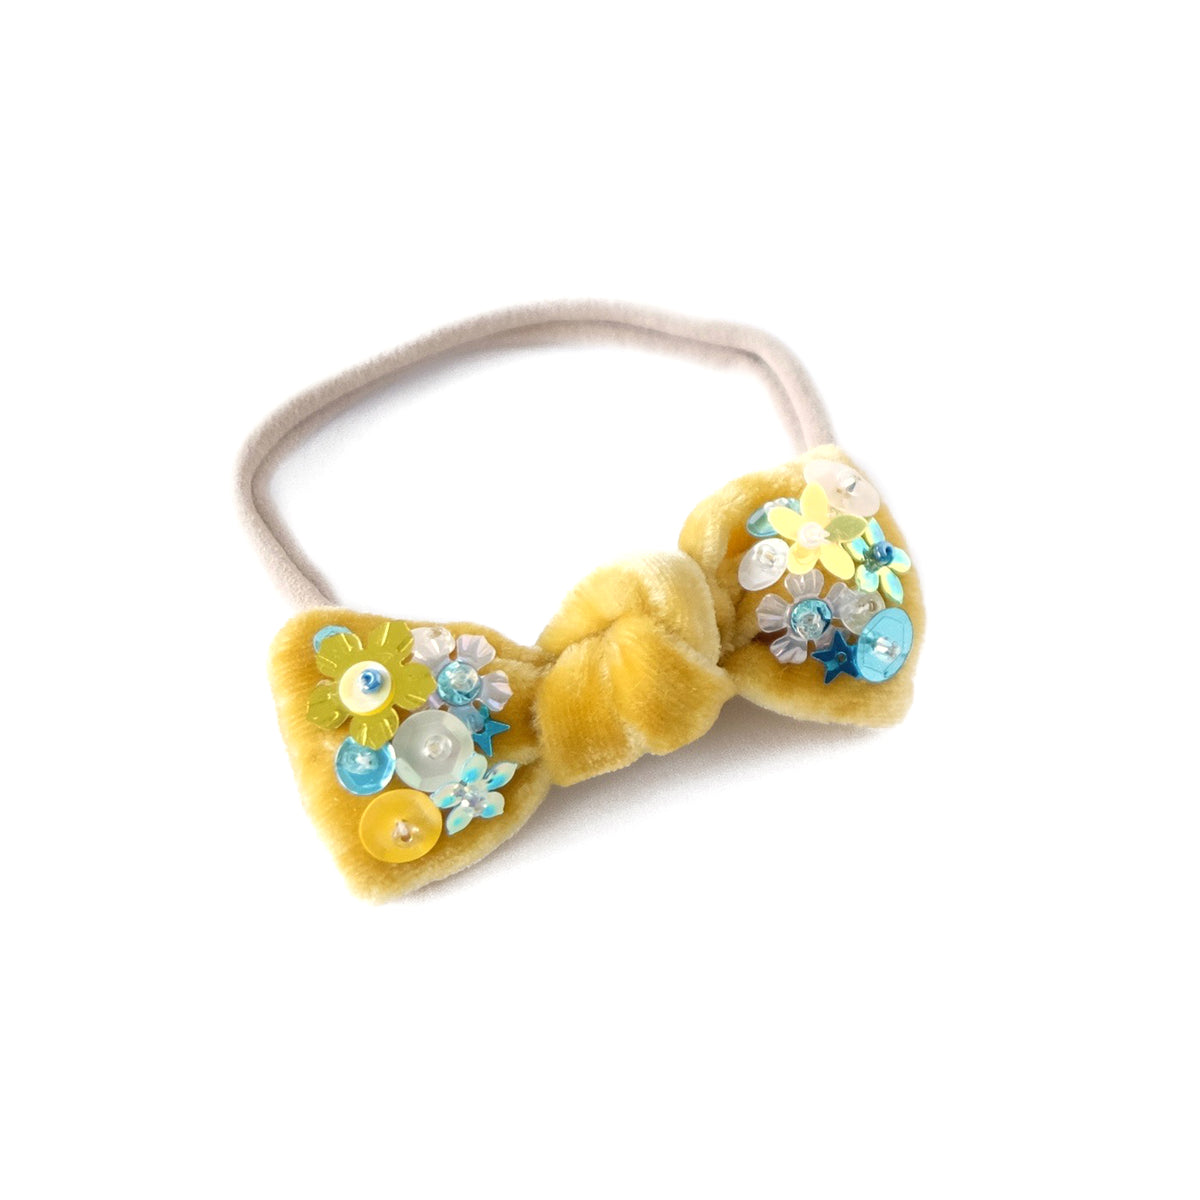 Hair bow with sequin, baby headband, in honey yellow colored velvet.